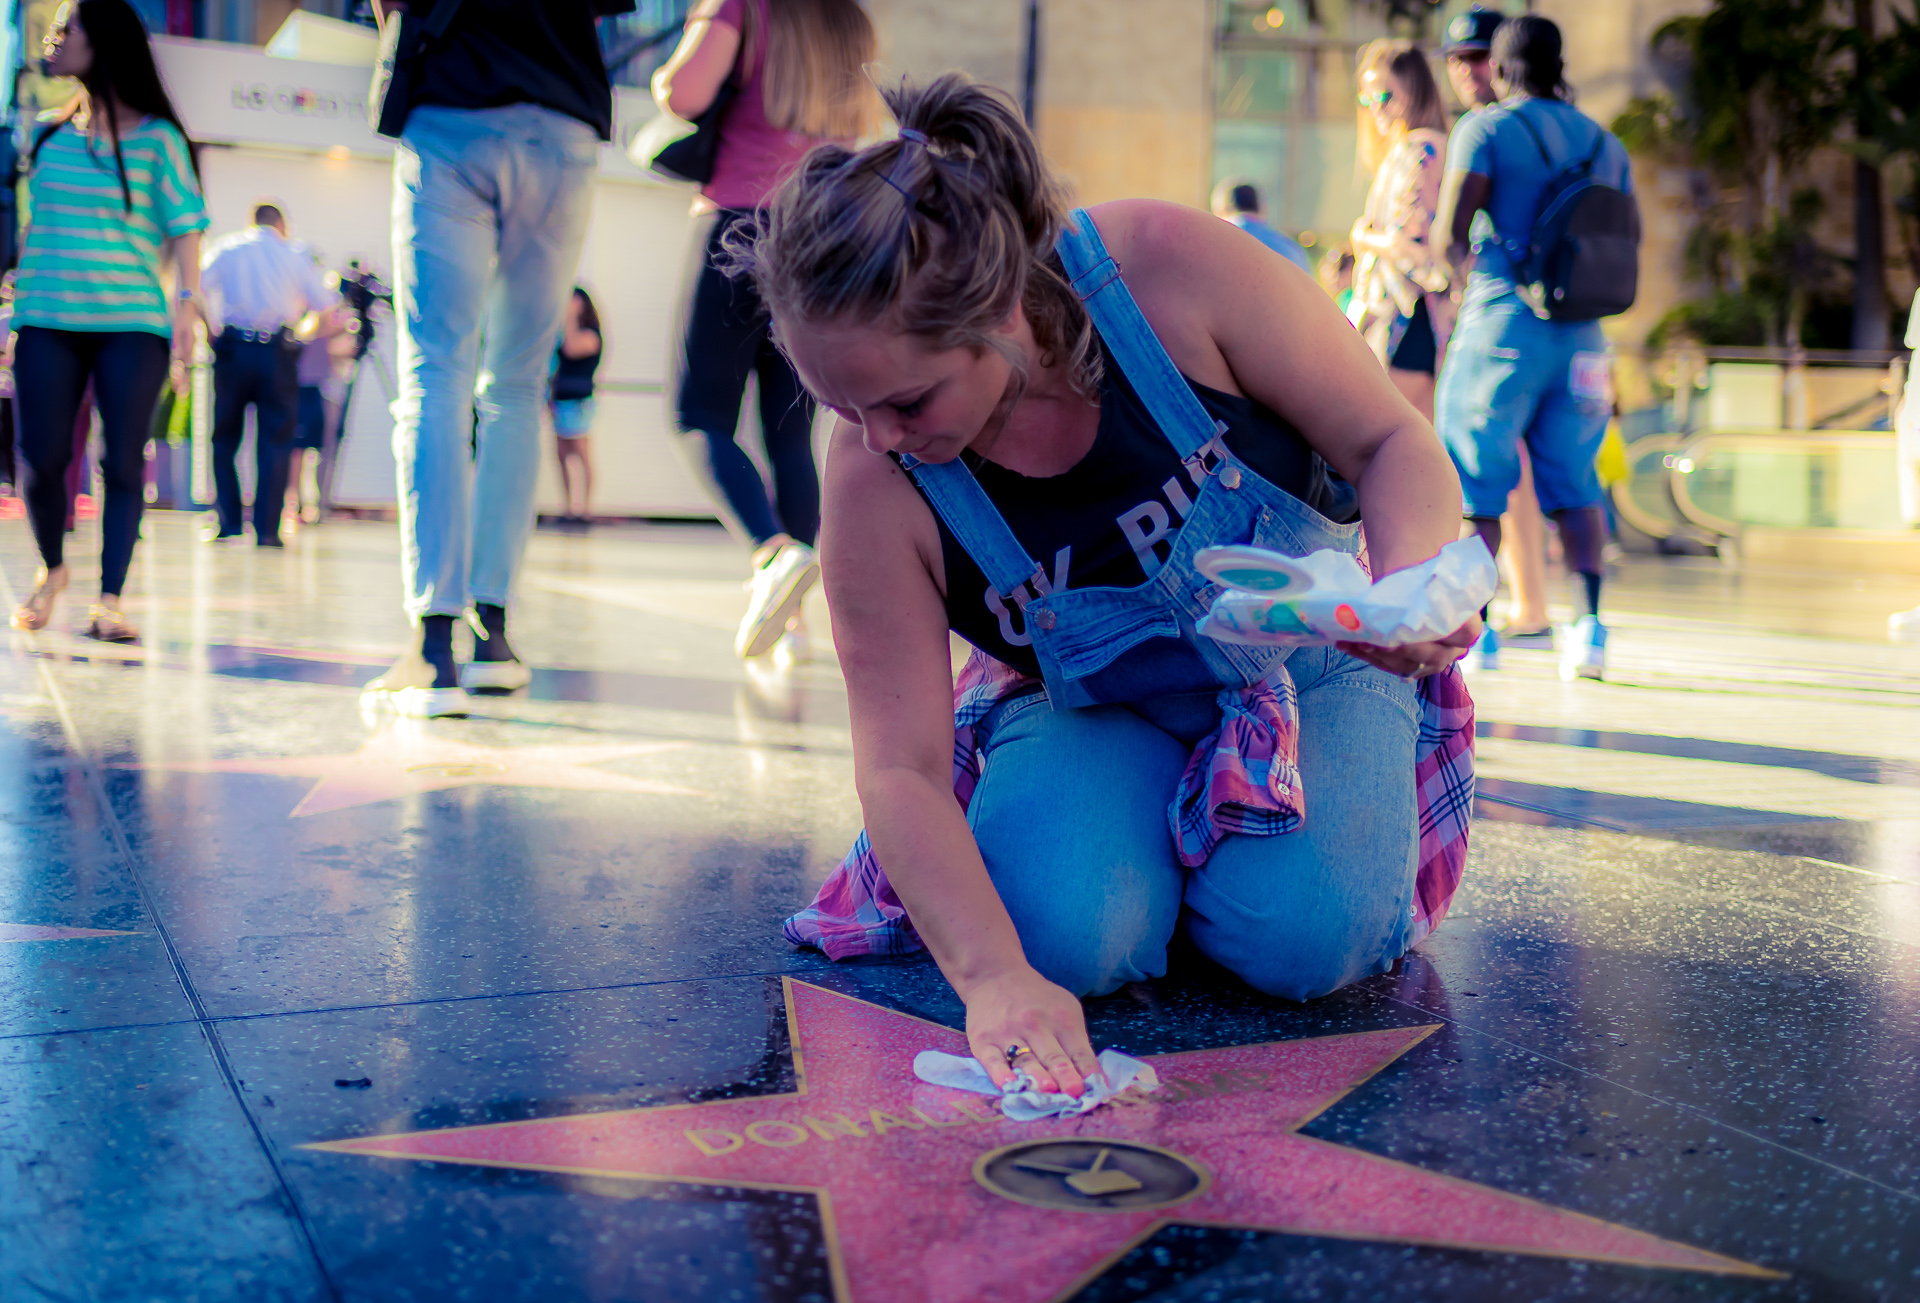 a woman in denim overalls kneeling at Donald Trump's star on Hollywood Blvd and cleaning it with baby wipes